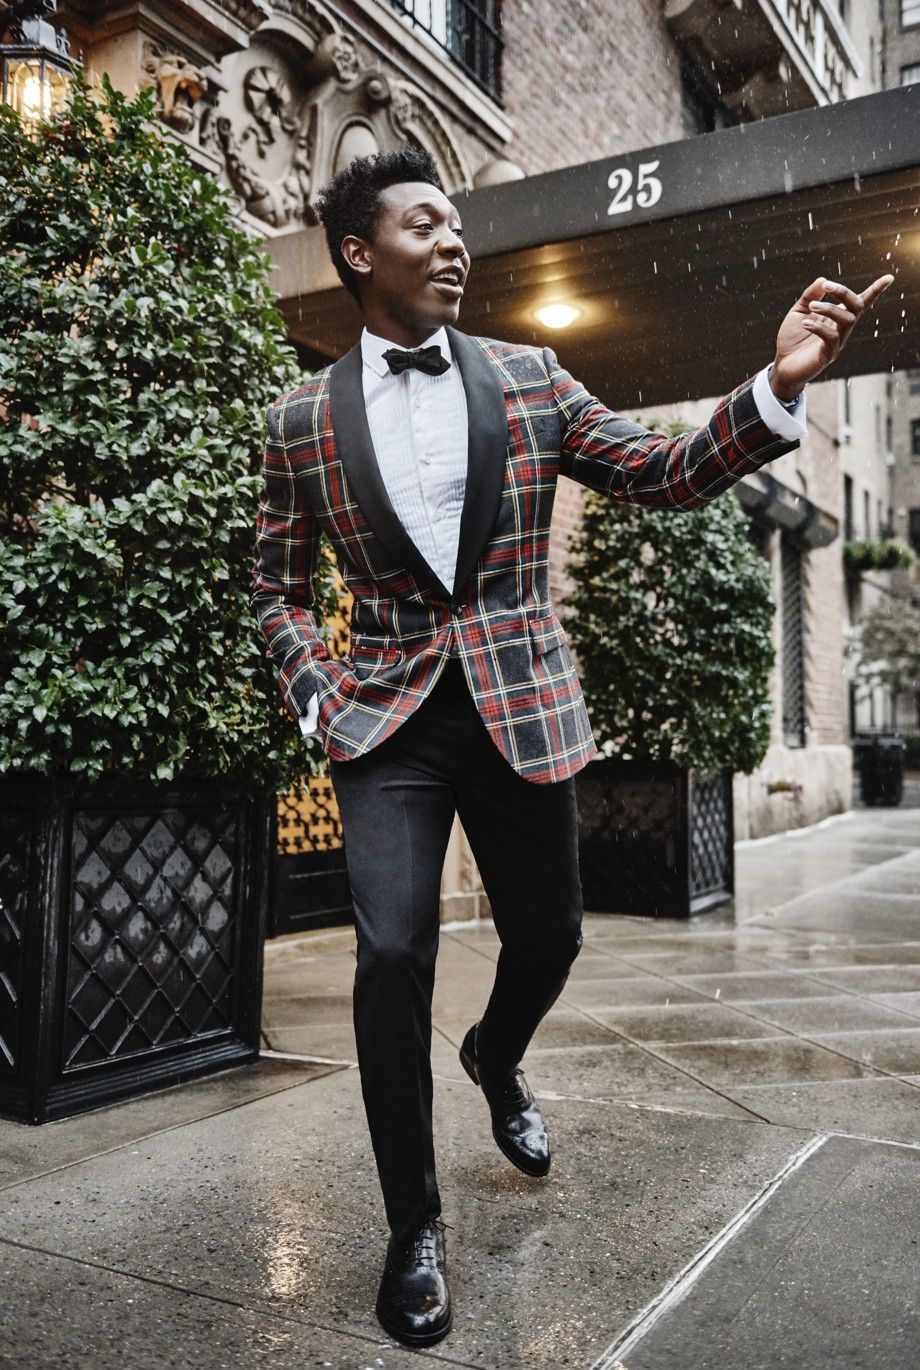 Christmas Party Suit Men.The New Rules Of Holiday Dressing By J Crew Bowtie Www